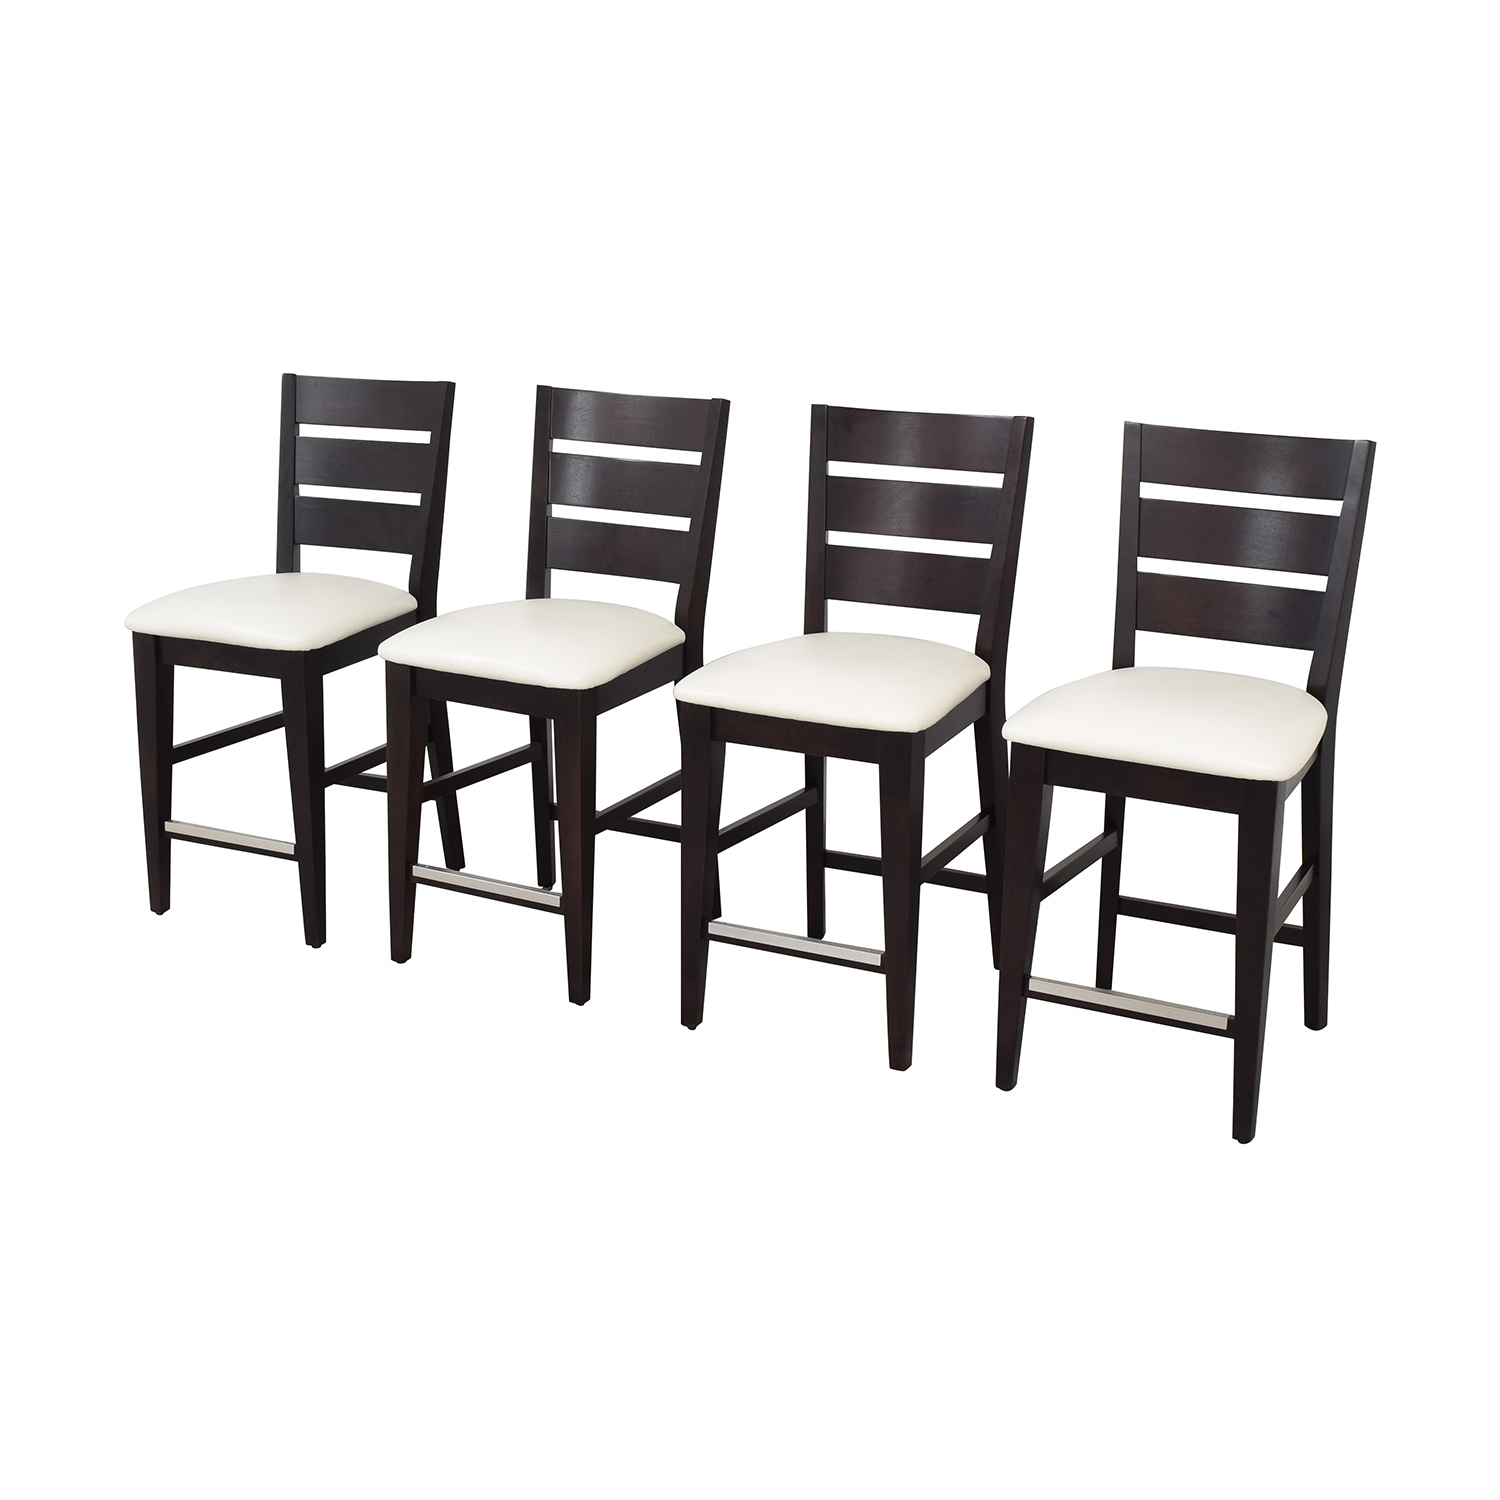 Thomasville Thomasville Upholstered Bar Chairs Chairs